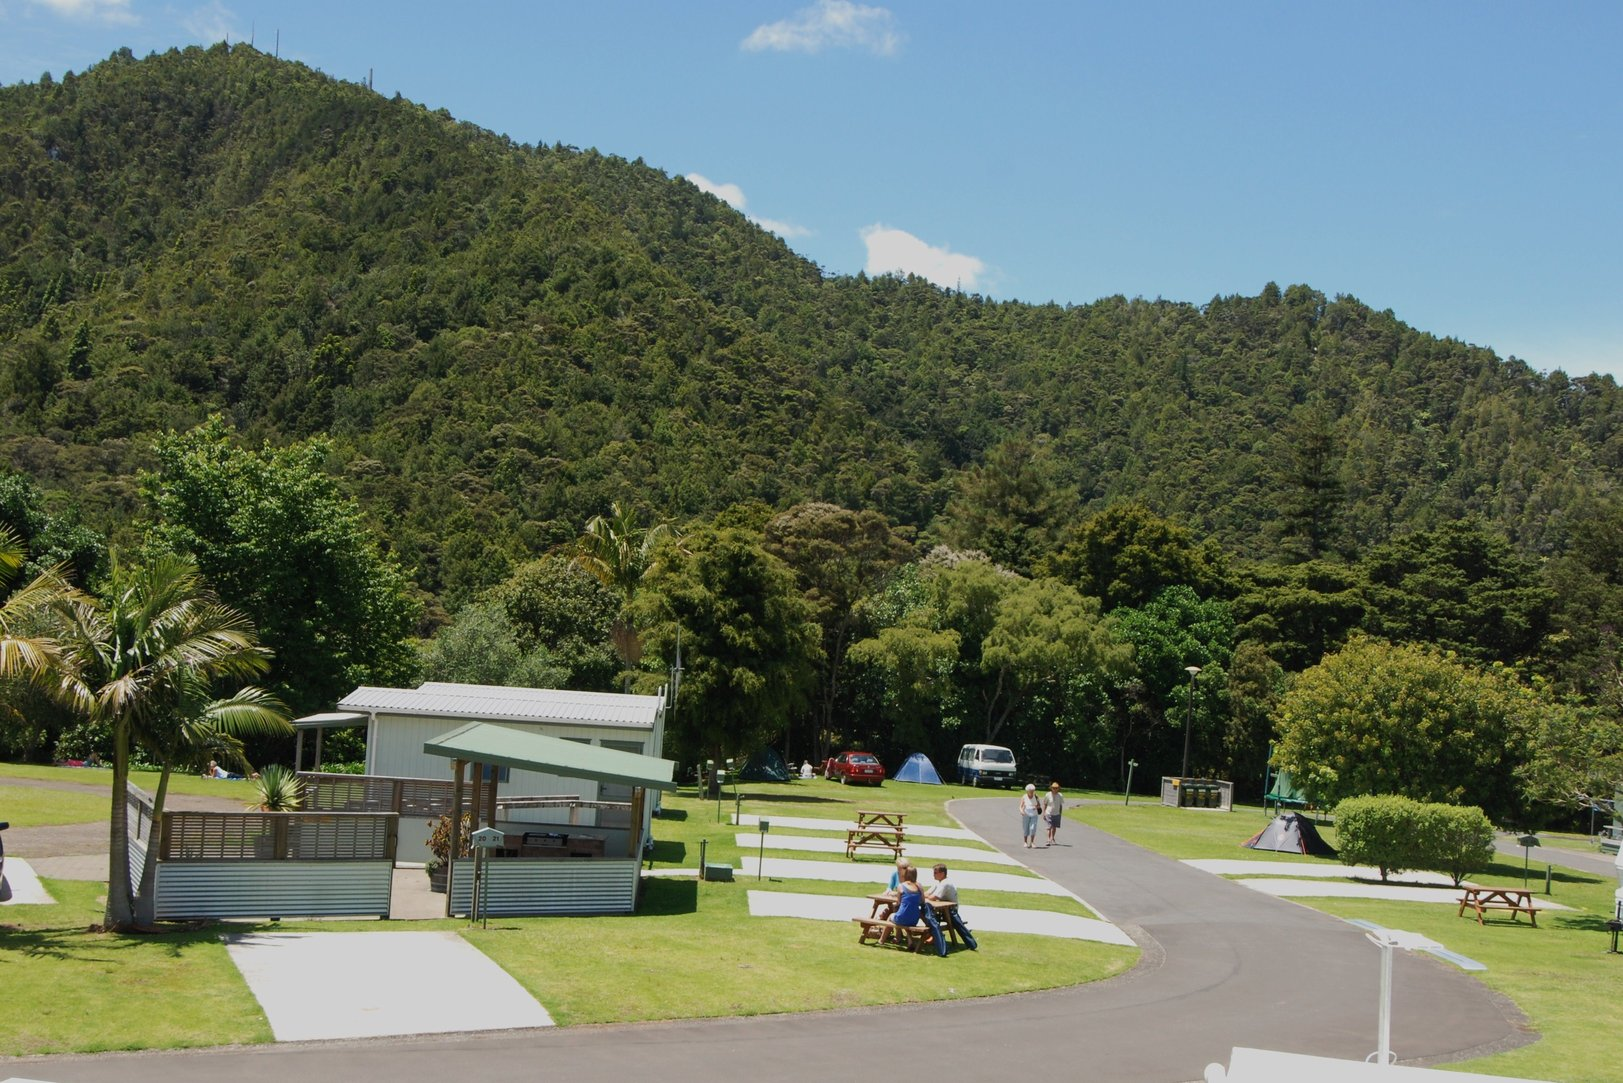 Whangarei Top 10 Holiday Park - power sites tent sites